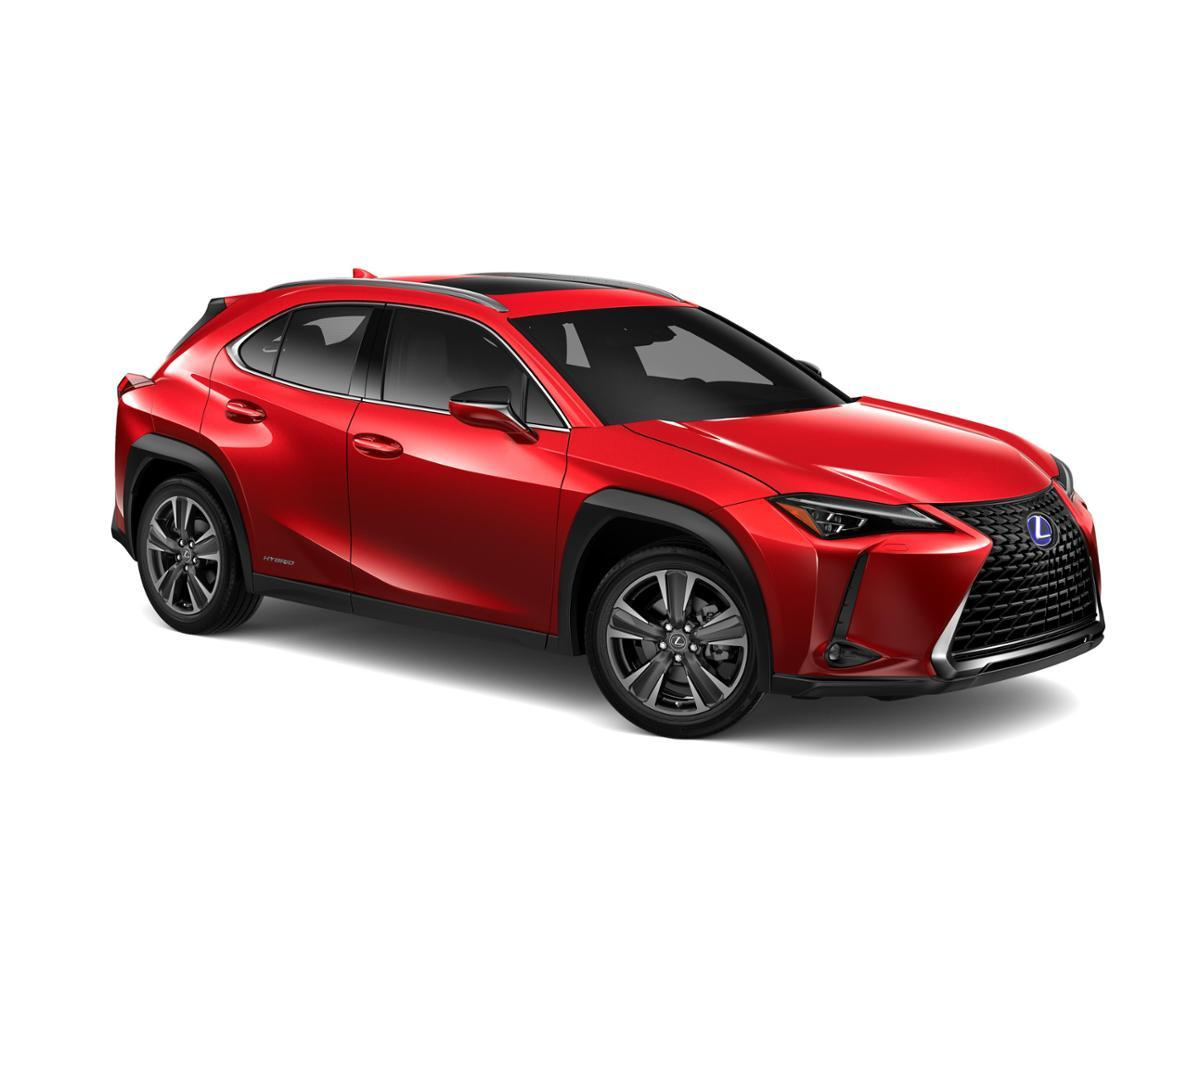 East Haven Lexus UX 250h 2019 Redline: New Suv For Sale